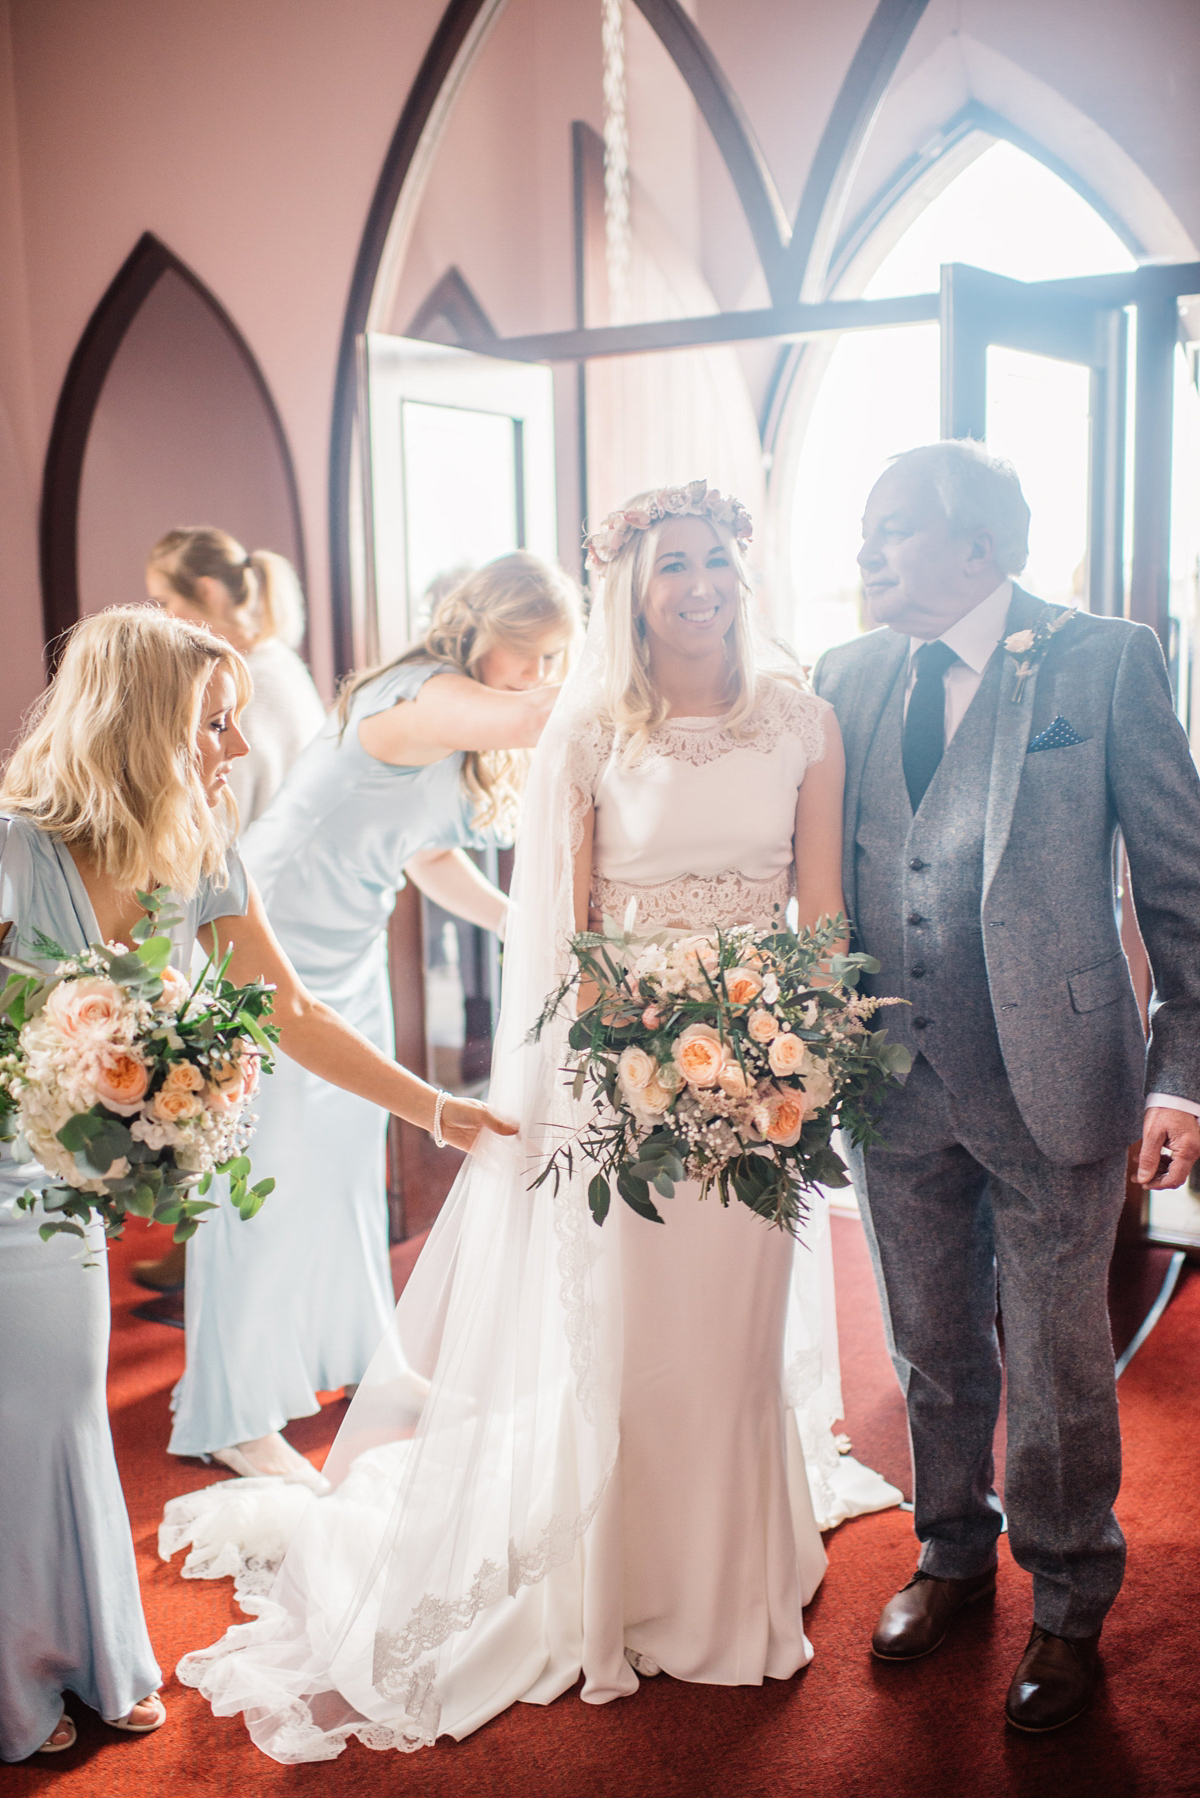 Bride Heidi wears Rime Arodaky separates for her French wedding in Ireland. Kat Mervyn Photography.